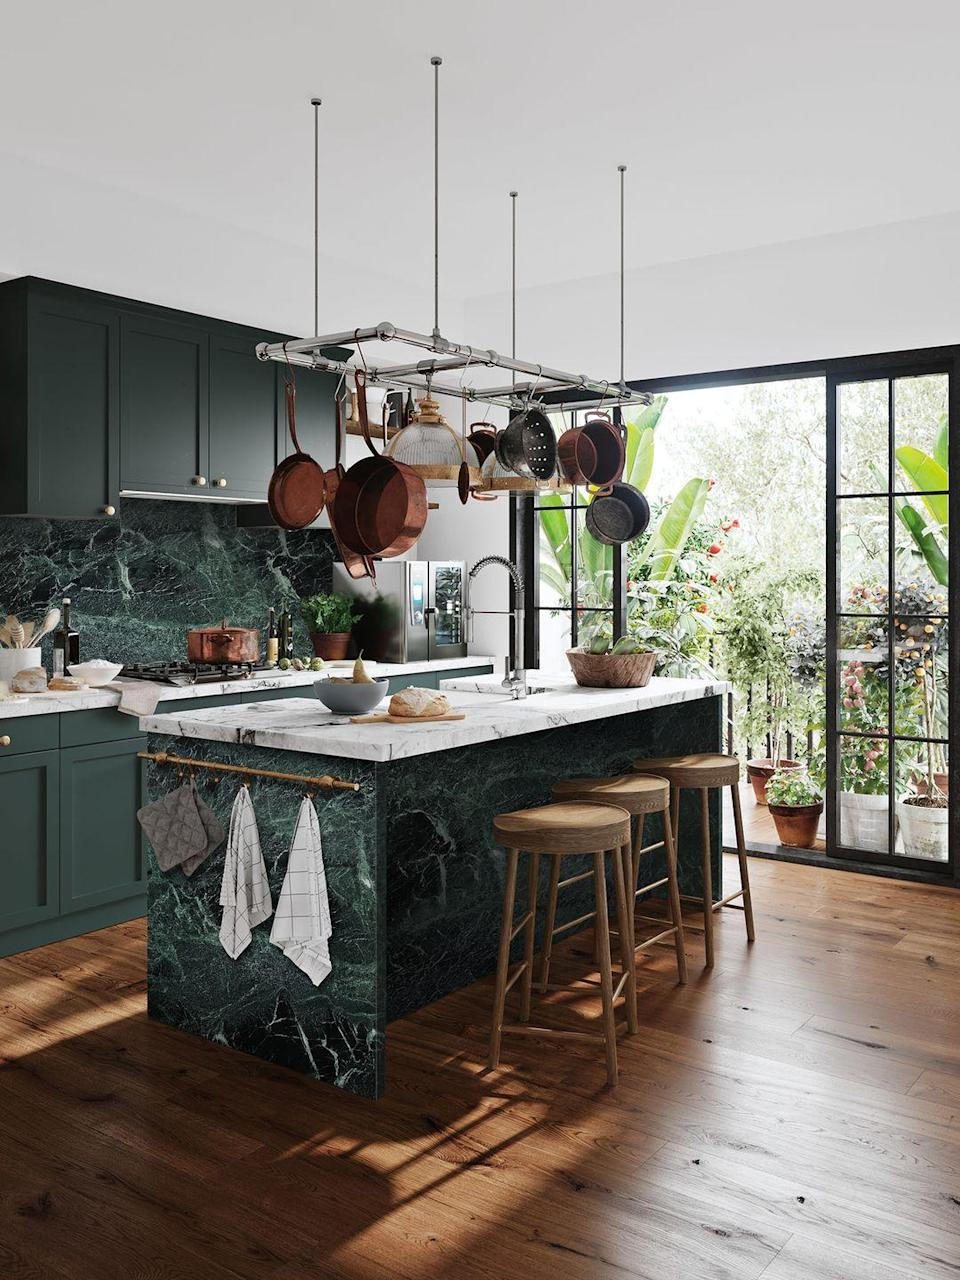 "<p>At the start of 2020, the staple kitchen island was slowly adapting into the dining island, ensuring the family can cook, dine and spend time together in one room. For 2021, the desire for a kitchen island remains strong. According to Homebase, nearly 85 per cent of customers surveyed prefer an island in their kitchen.</p><p>'Kitchen islands are a perennial favourite but are even more in demand as we demand more and more of our kitchens as workspaces, classrooms and food preparation areas,' says Tom Howley, Creative Director at <a href=""https://www.tomhowley.co.uk/"" rel=""nofollow noopener"" target=""_blank"" data-ylk=""slk:Tom Howley"" class=""link rapid-noclick-resp"">Tom Howley</a>. 'I have designed kitchens where the island counter makes up just 15 per cent of the worktop space but boasts 90 per cent usage. When possible, do fit an island counter. They serve as impromptu dinner tables, bars, home offices and food prep stations. Sometimes all at the same time.'<br></p><p>Pictured: Verde Tinos Marble in green, <a href=""https://geraldculliford.co.uk/product/verde-tinos/"" rel=""nofollow noopener"" target=""_blank"" data-ylk=""slk:Cullifords"" class=""link rapid-noclick-resp"">Cullifords</a></p>"